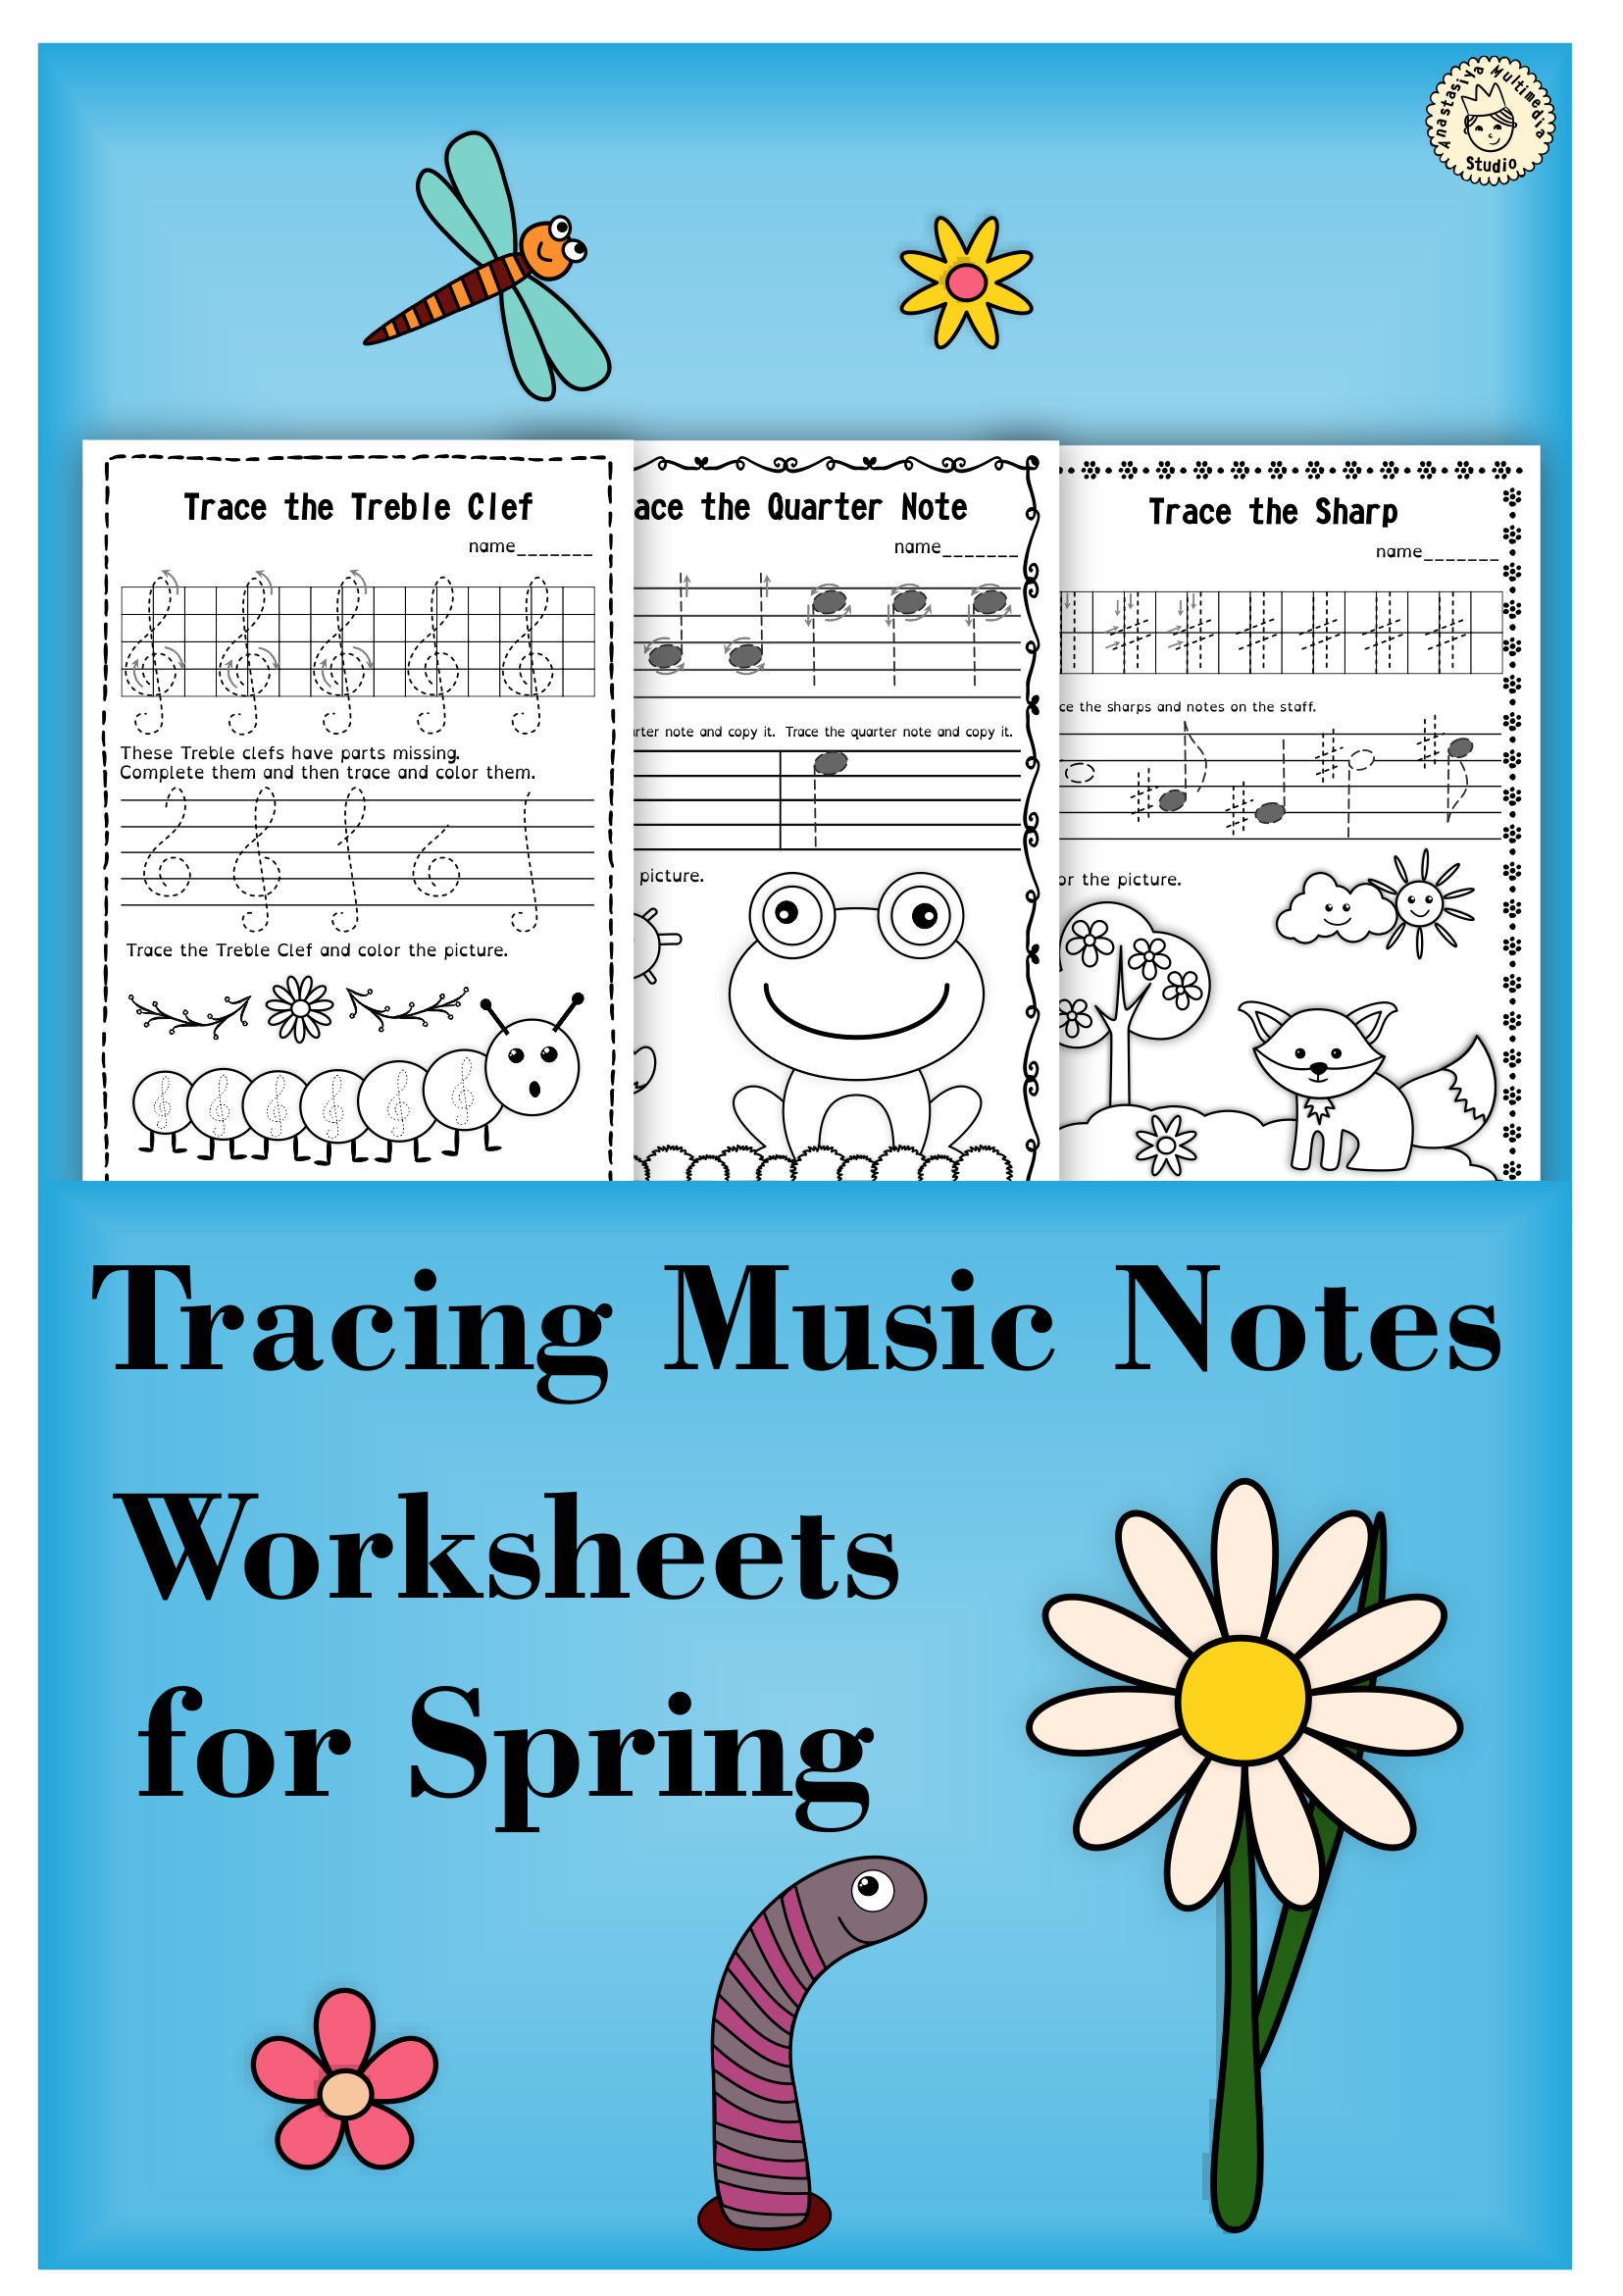 Tracing Music Notes Worksheets For Spring